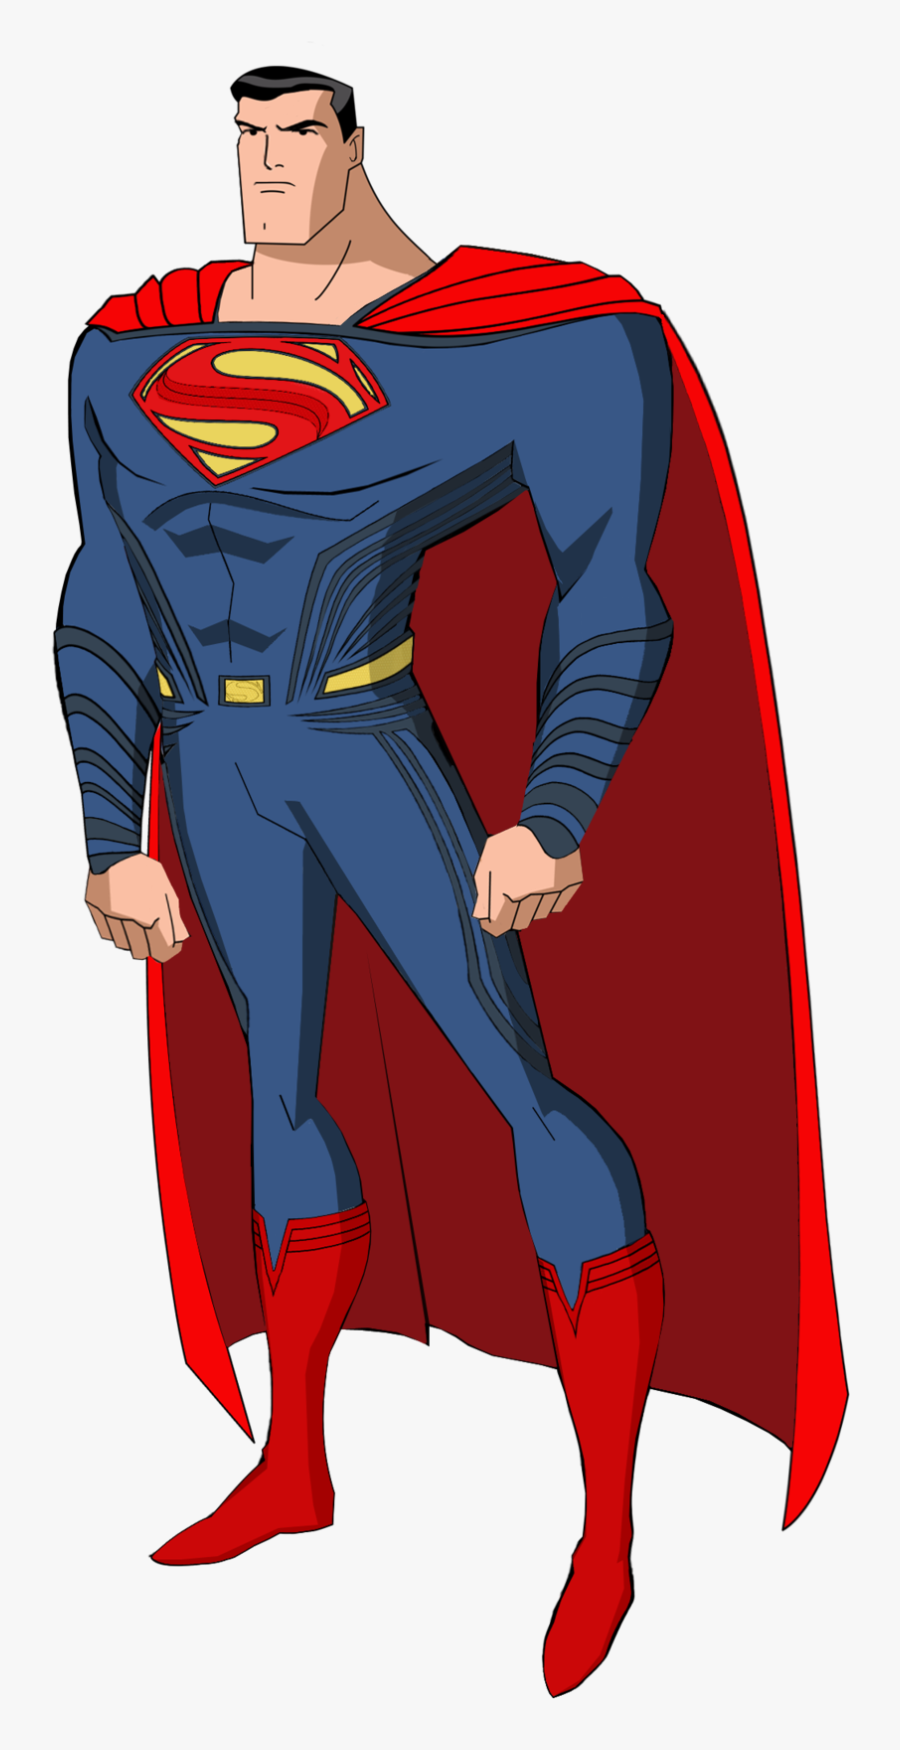 Junkyard Drawing Superman Transparent Png Clipart Free Superman Justice League Cartoon Free Transparent Clipart Clipartkey Found 1 free justice league drawing tutorials which can be drawn using pencil, market, photoshop, illustrator just follow step by step directions. junkyard drawing superman transparent